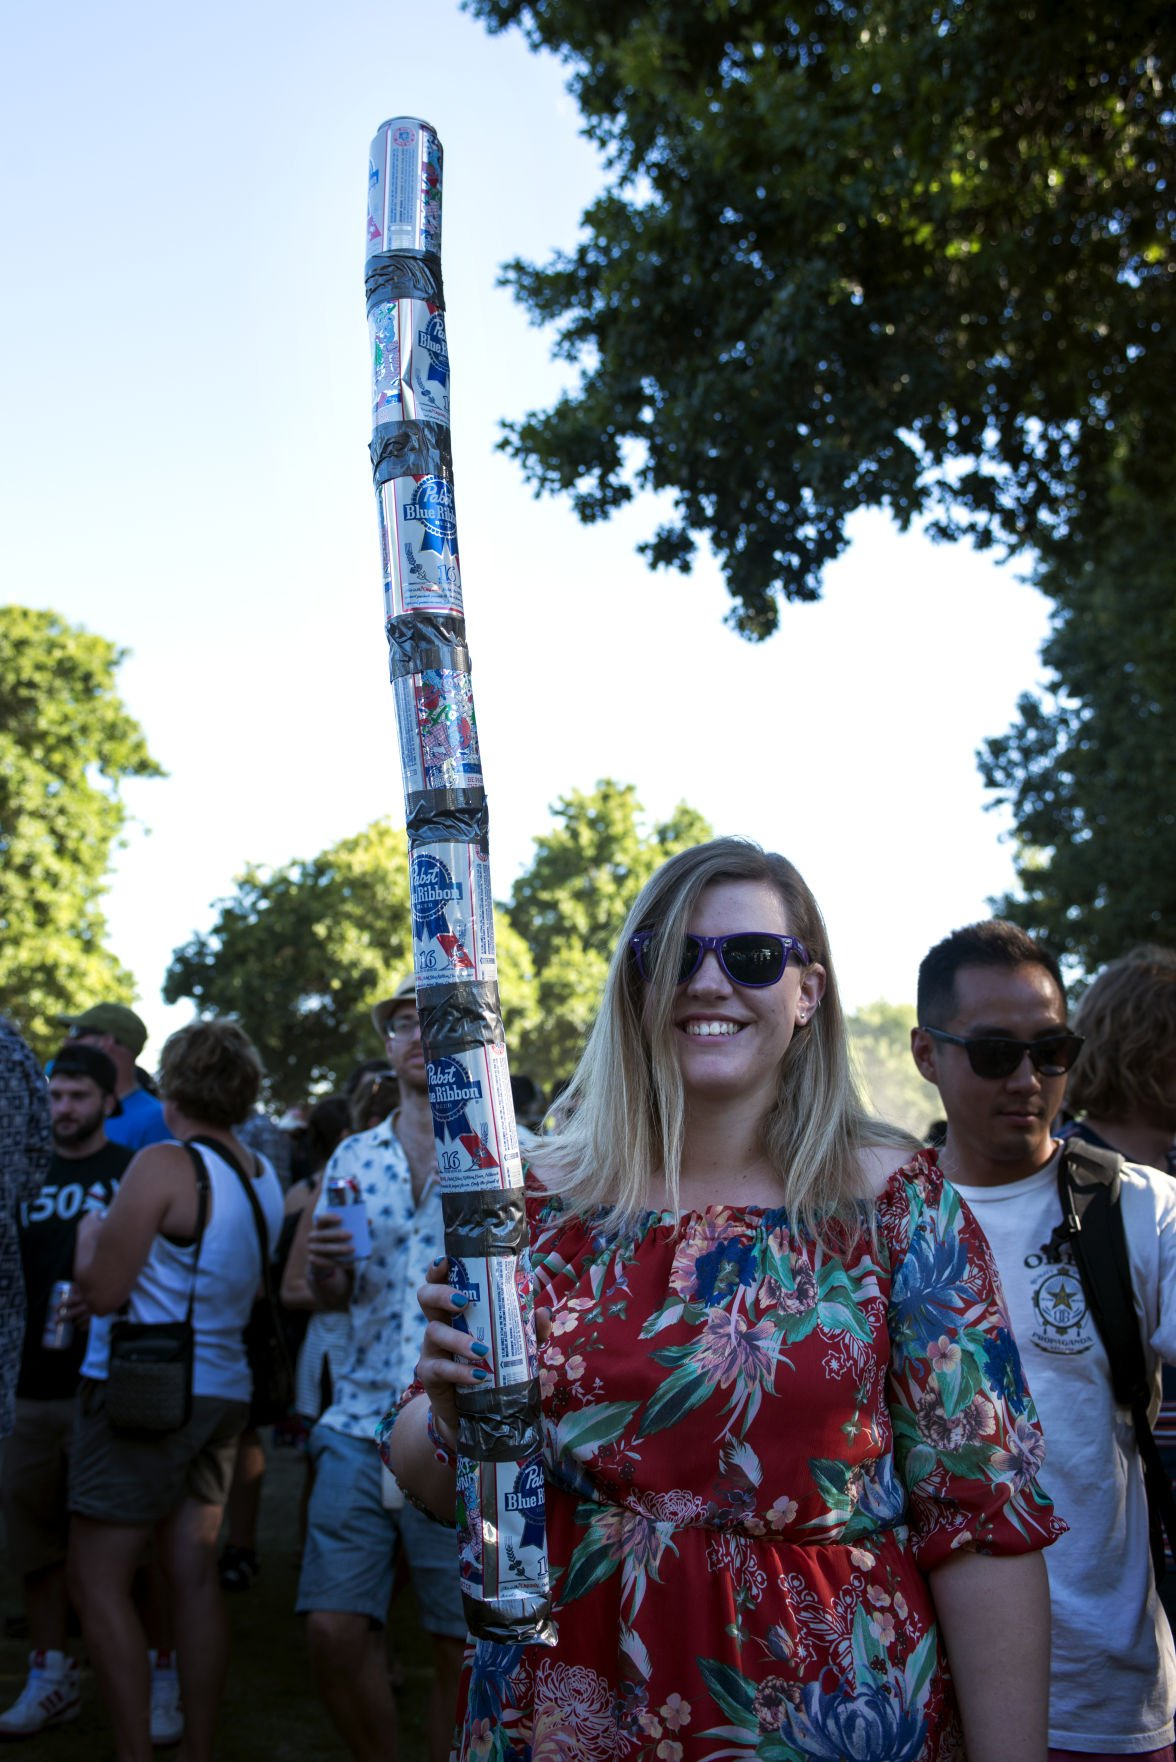 Day One Photos: MusicfestNW presents Project Pabst at the Tom McCall Waterfront Park